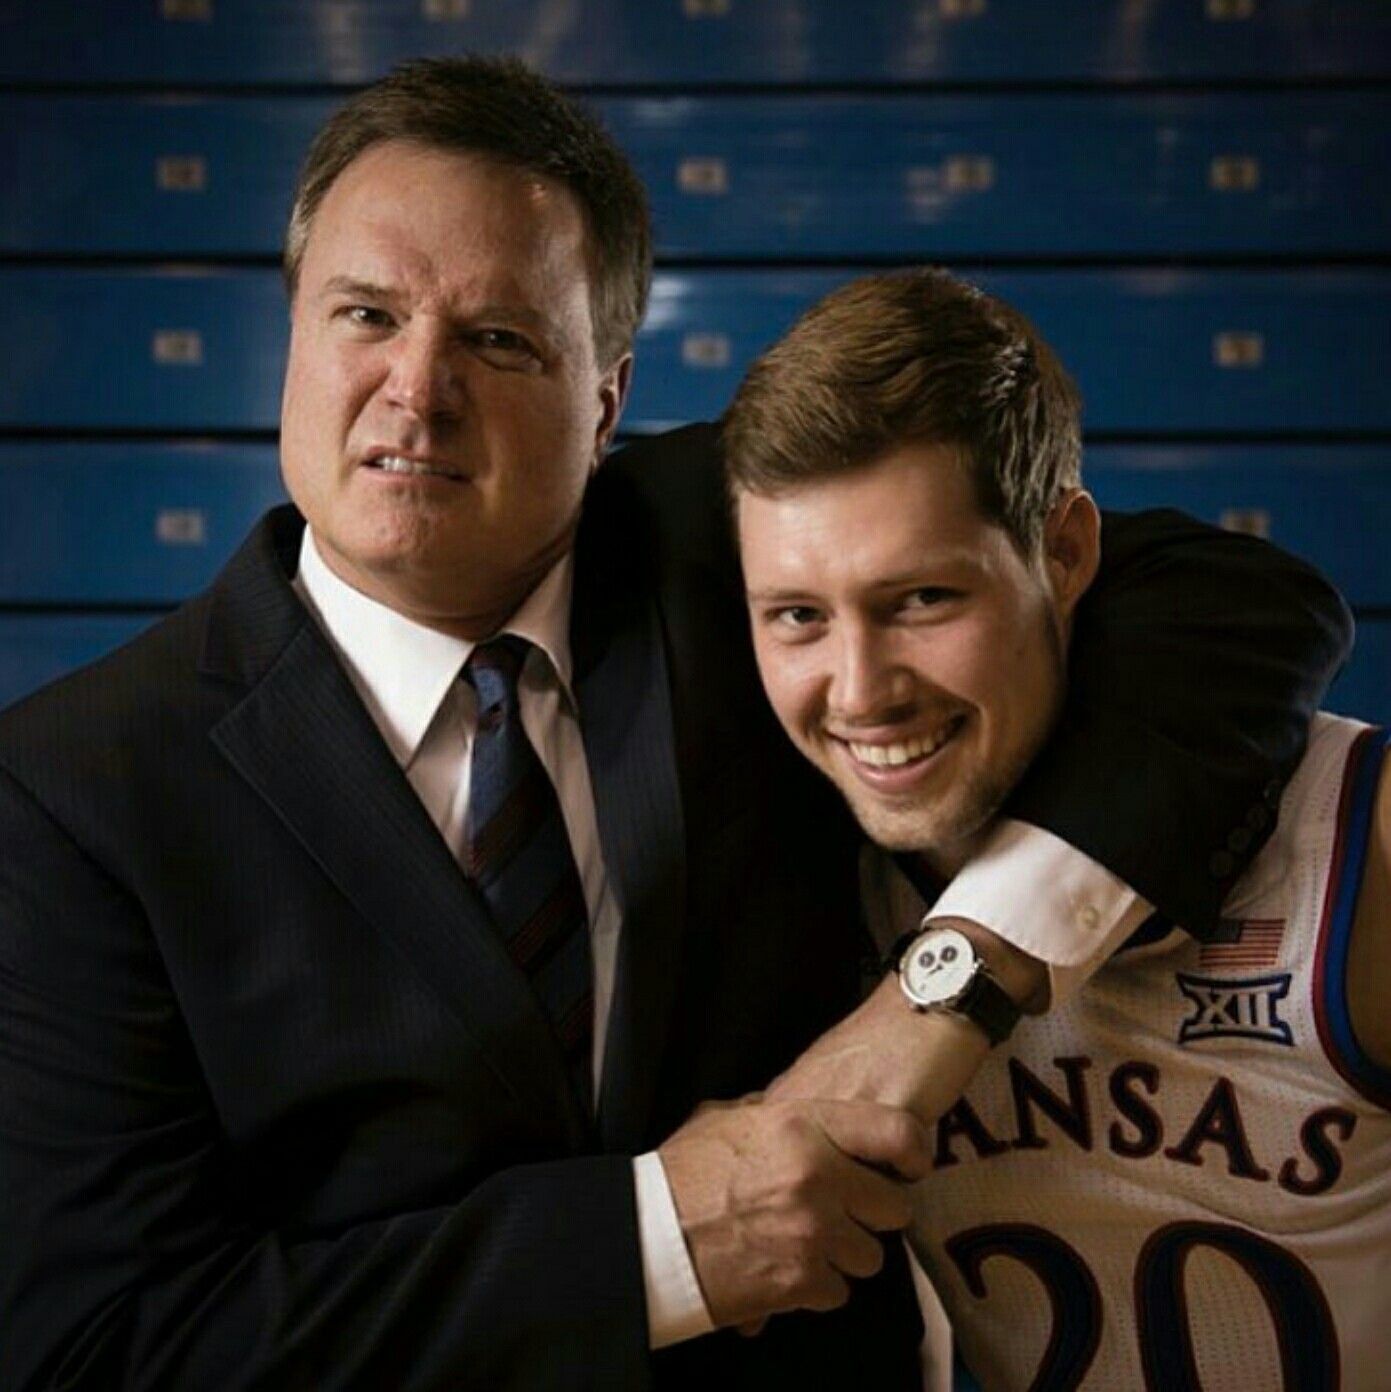 17 beste ideer om bill self på kansas jayhawks